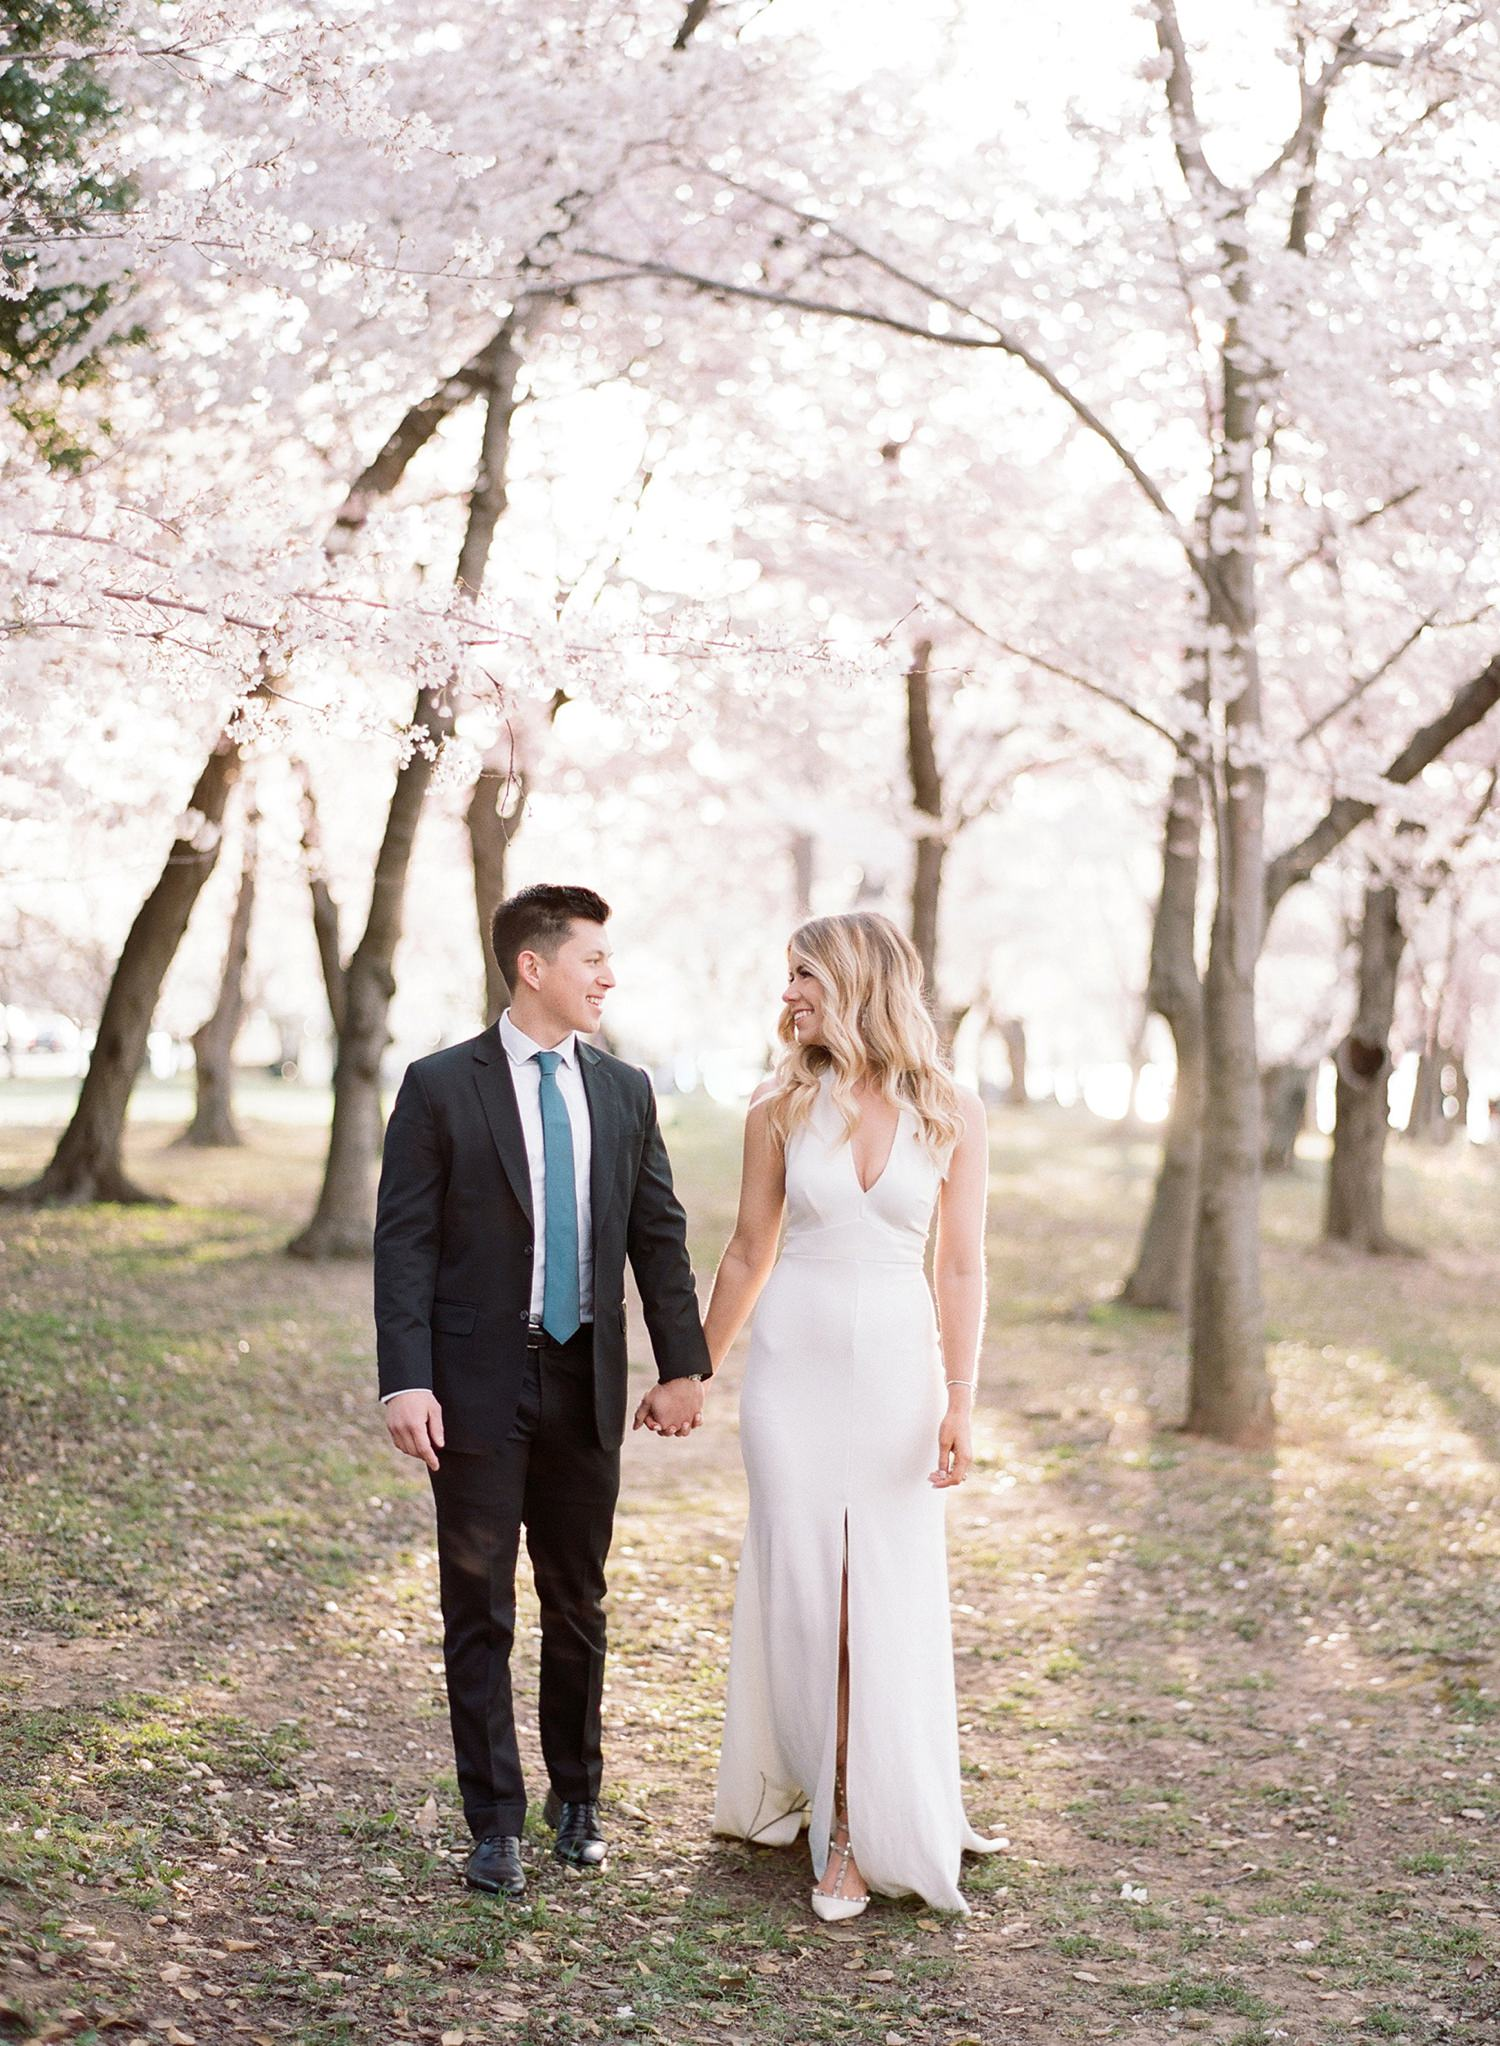 DC sunrise cherry blossom engagement session